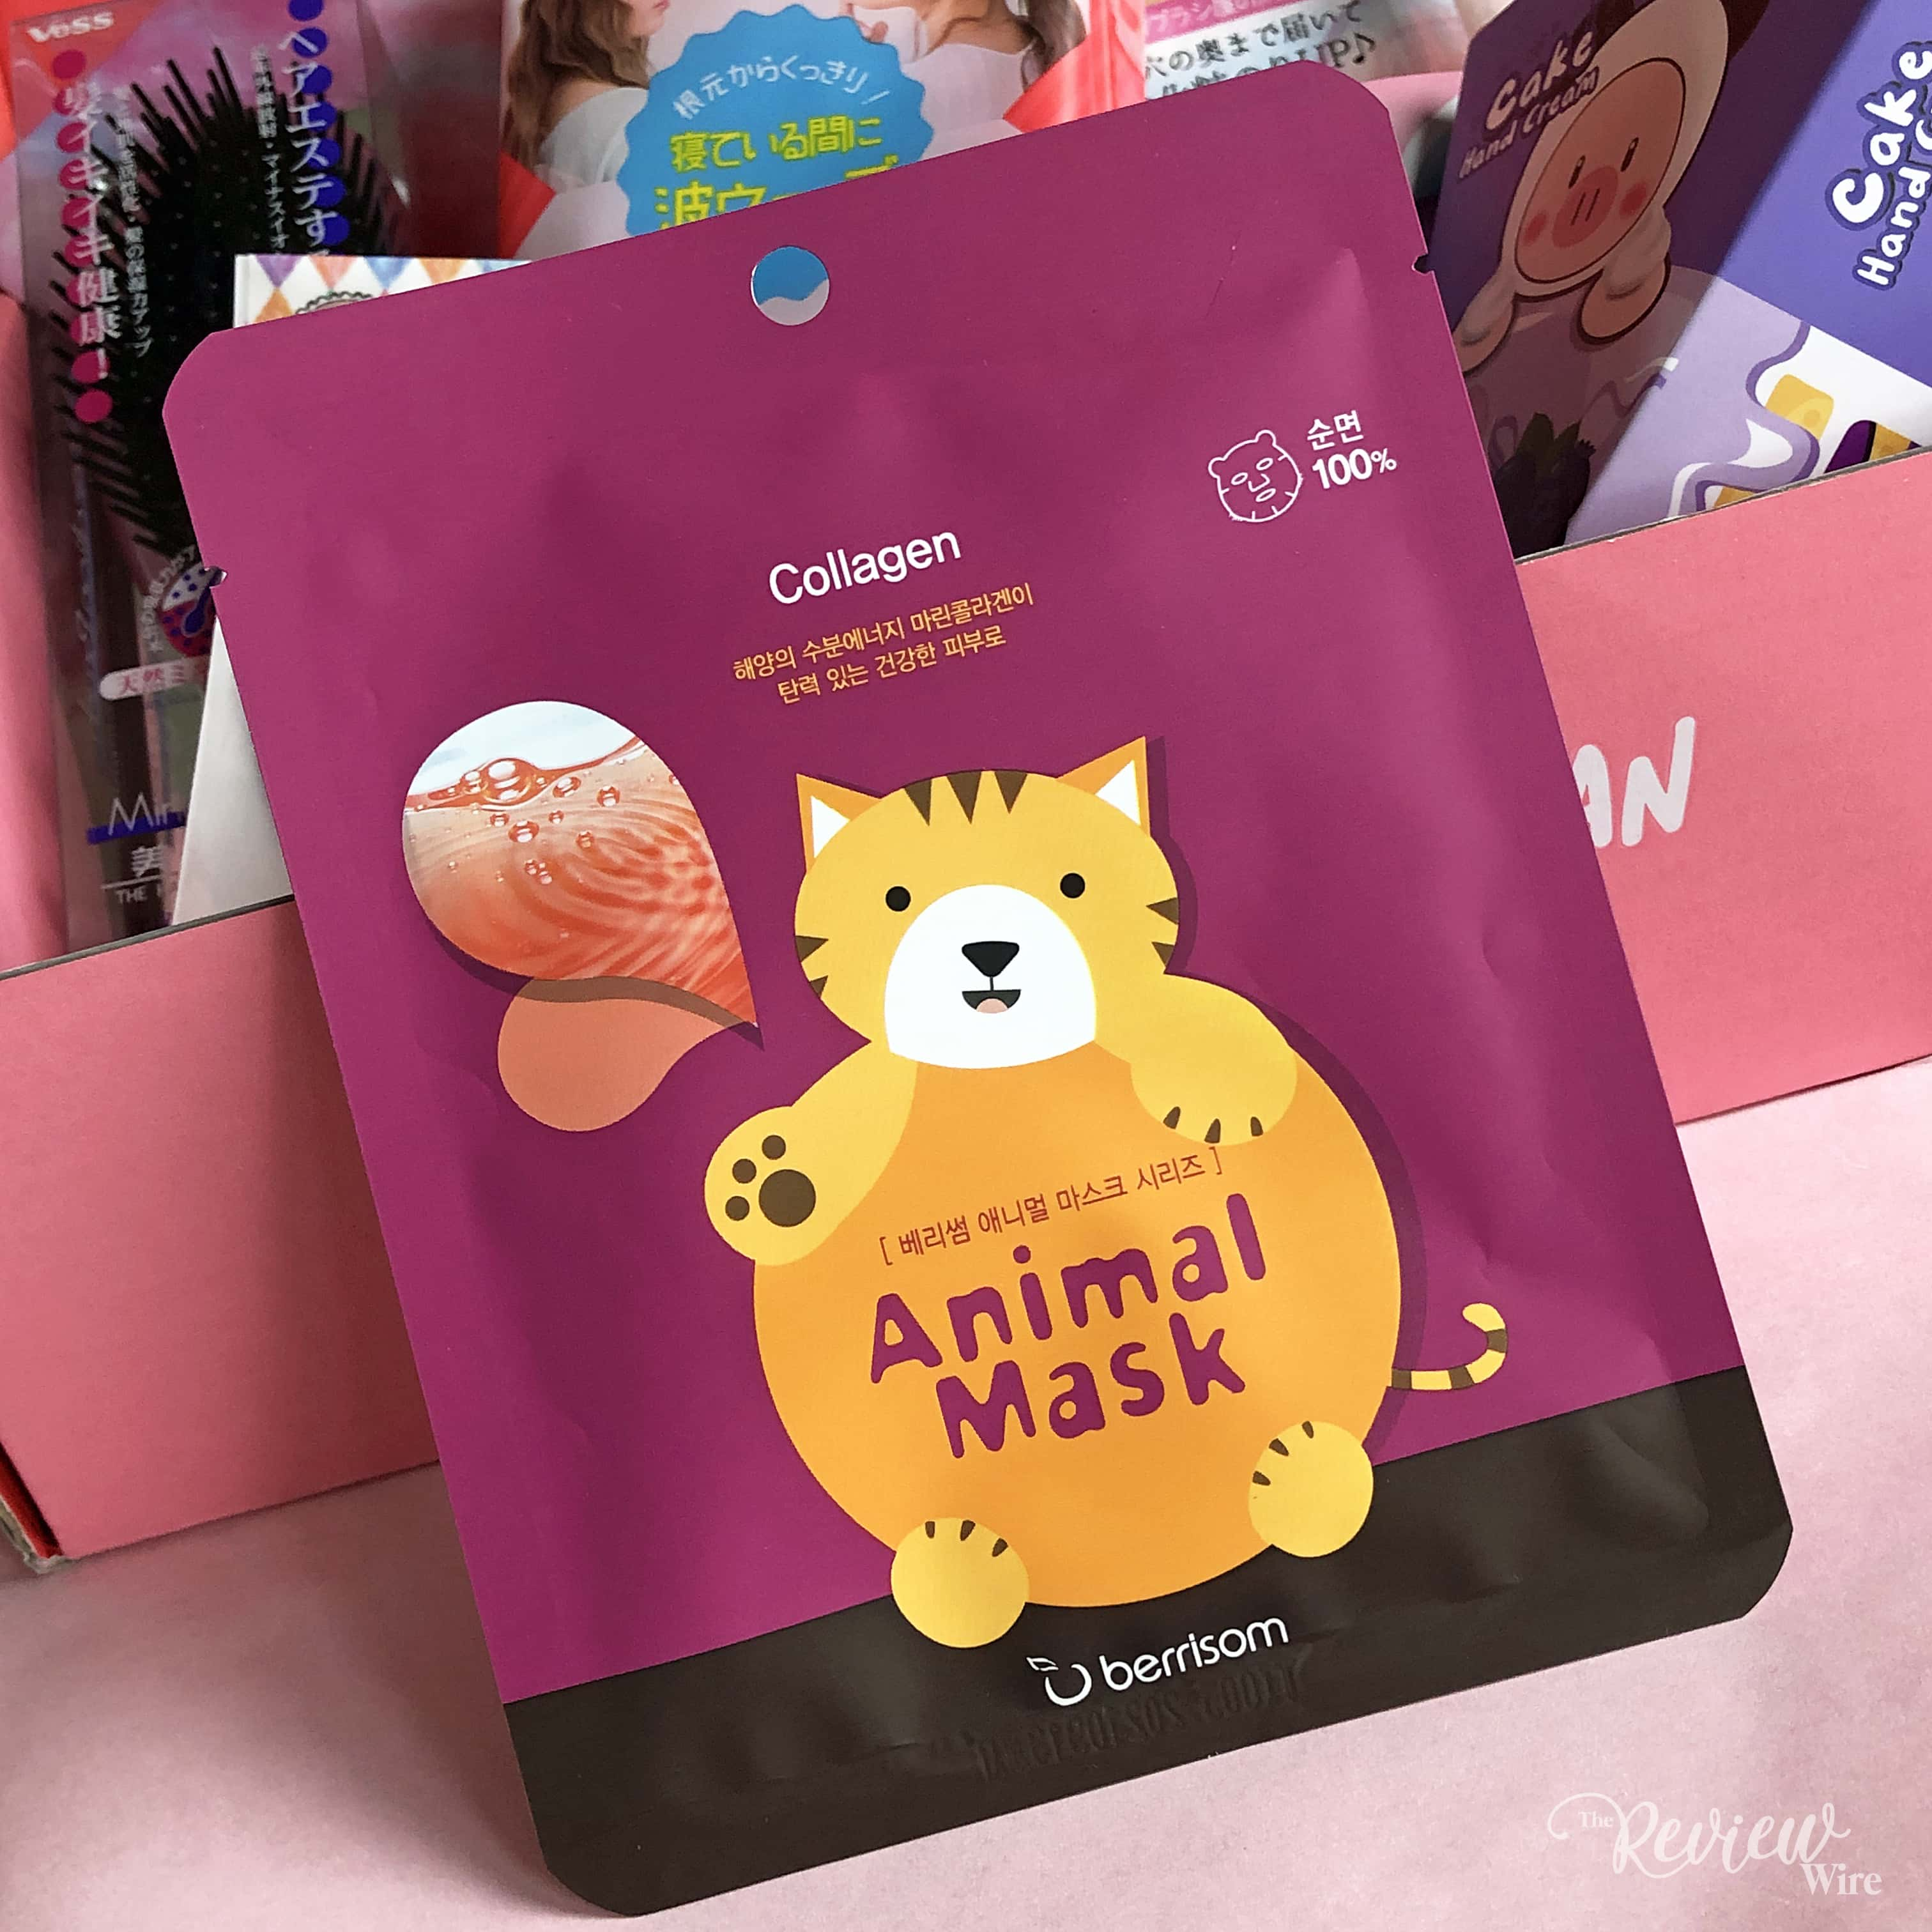 The Review Wire: nomakenolife Korean and Japanese Beauty Box: March 2019 Vibrant Vibes: Berrisom Animal Mask